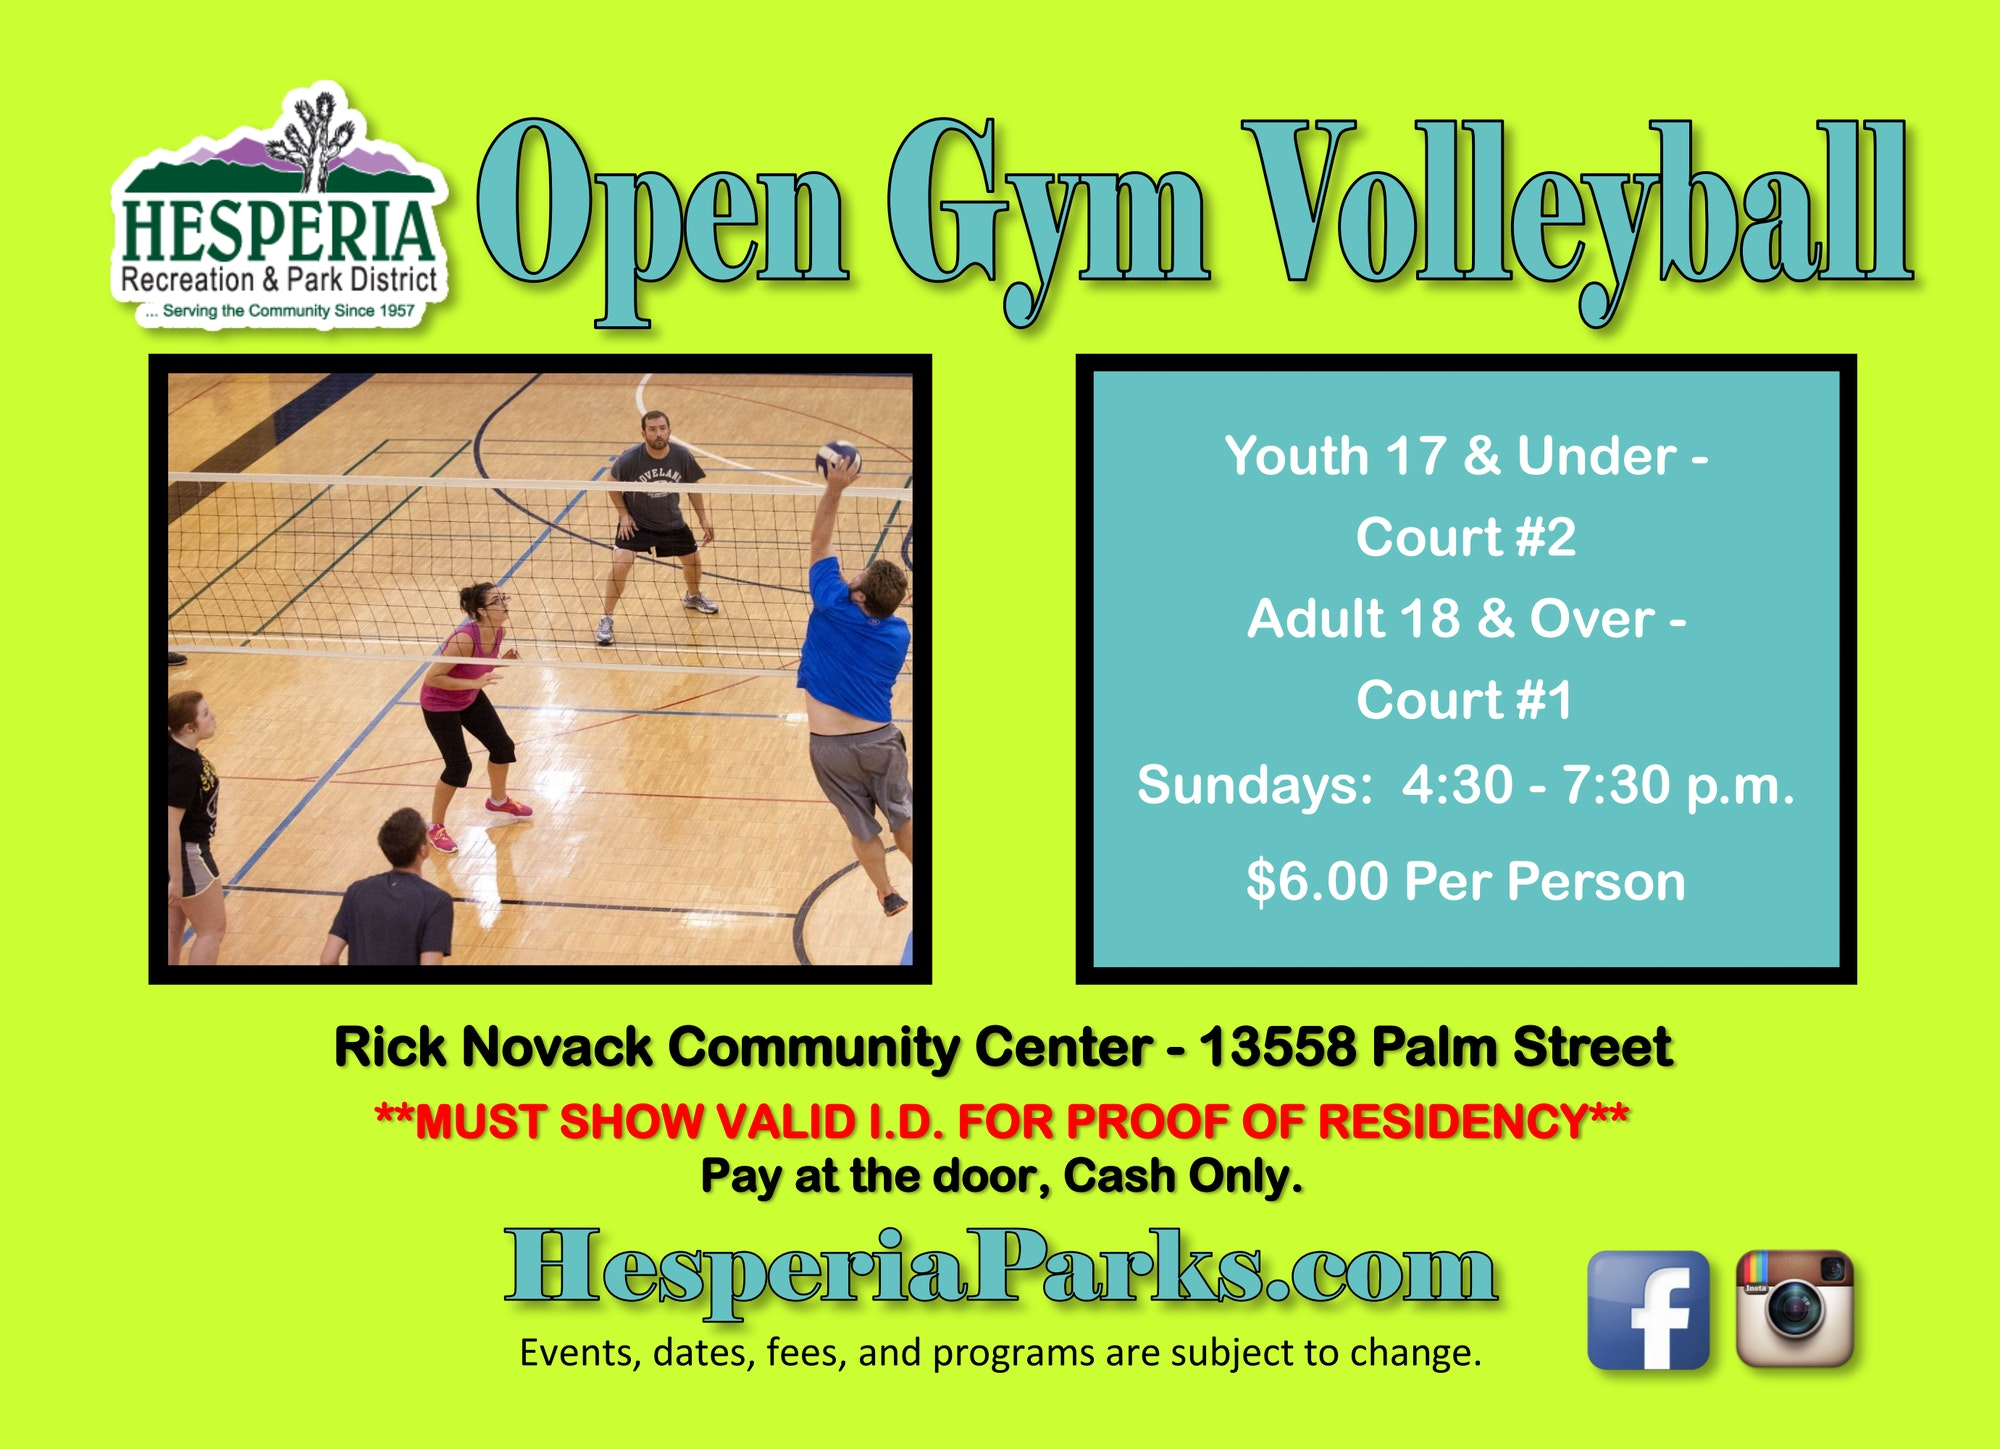 Open Gym Volleyball Youth 17 and under court #2. Adult 18 and over court #1. Sundays from 4:30 to 7:30 p.m. $6.00 per person. Rick Novack Community Center 13558 Palm Street. **Must show valid I.D. for proof of residency. Pay at the door, cash only. HesperiaParks.com. Events, dates, fees, and programs are subject to change.